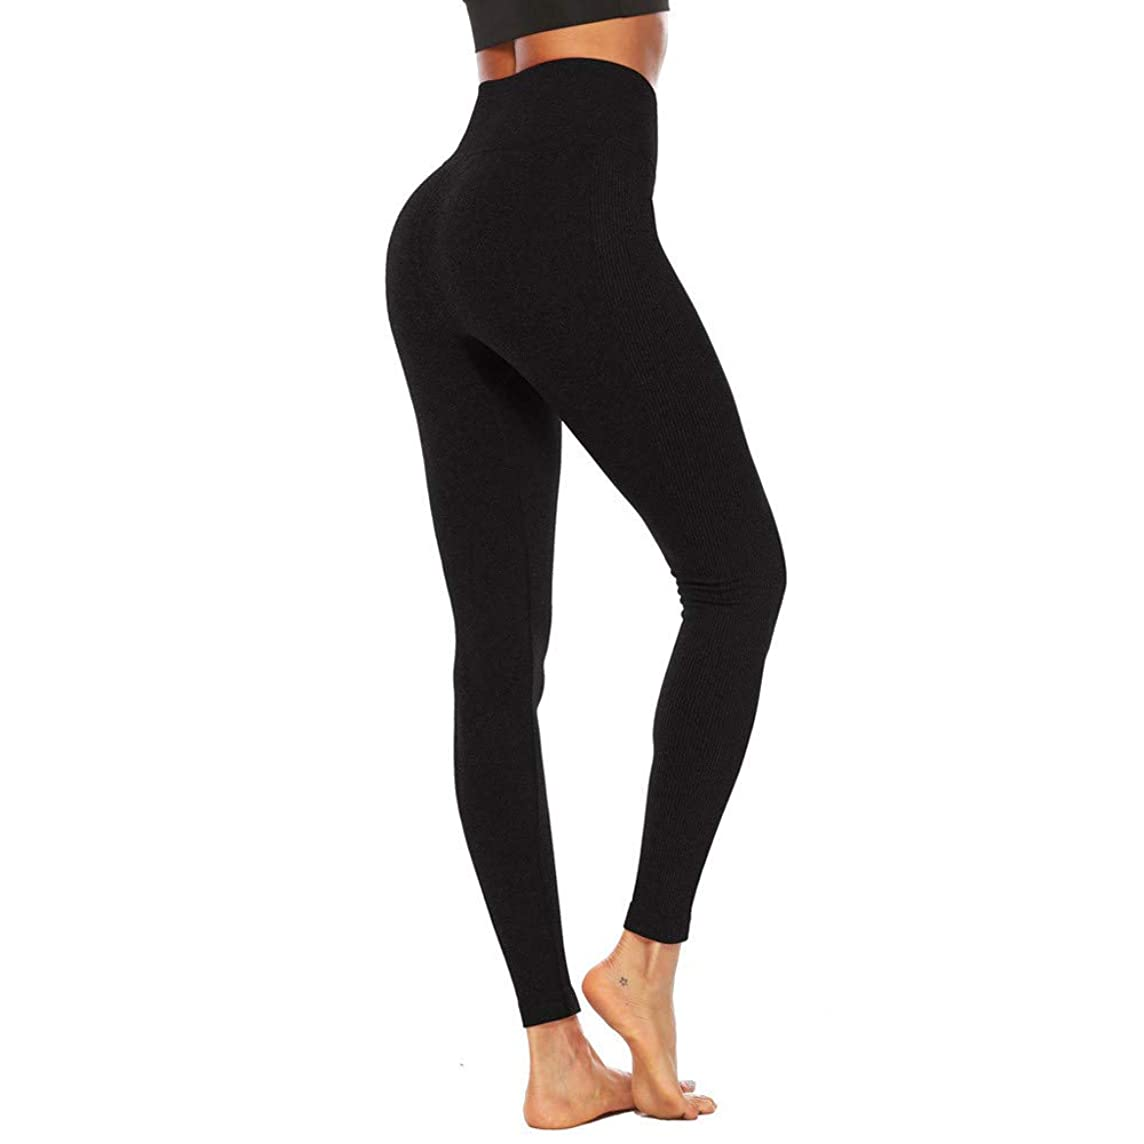 Kinglly Women Adjustable Workout Solid Line Leggings Fitness Sport Yoga Athletic Pants